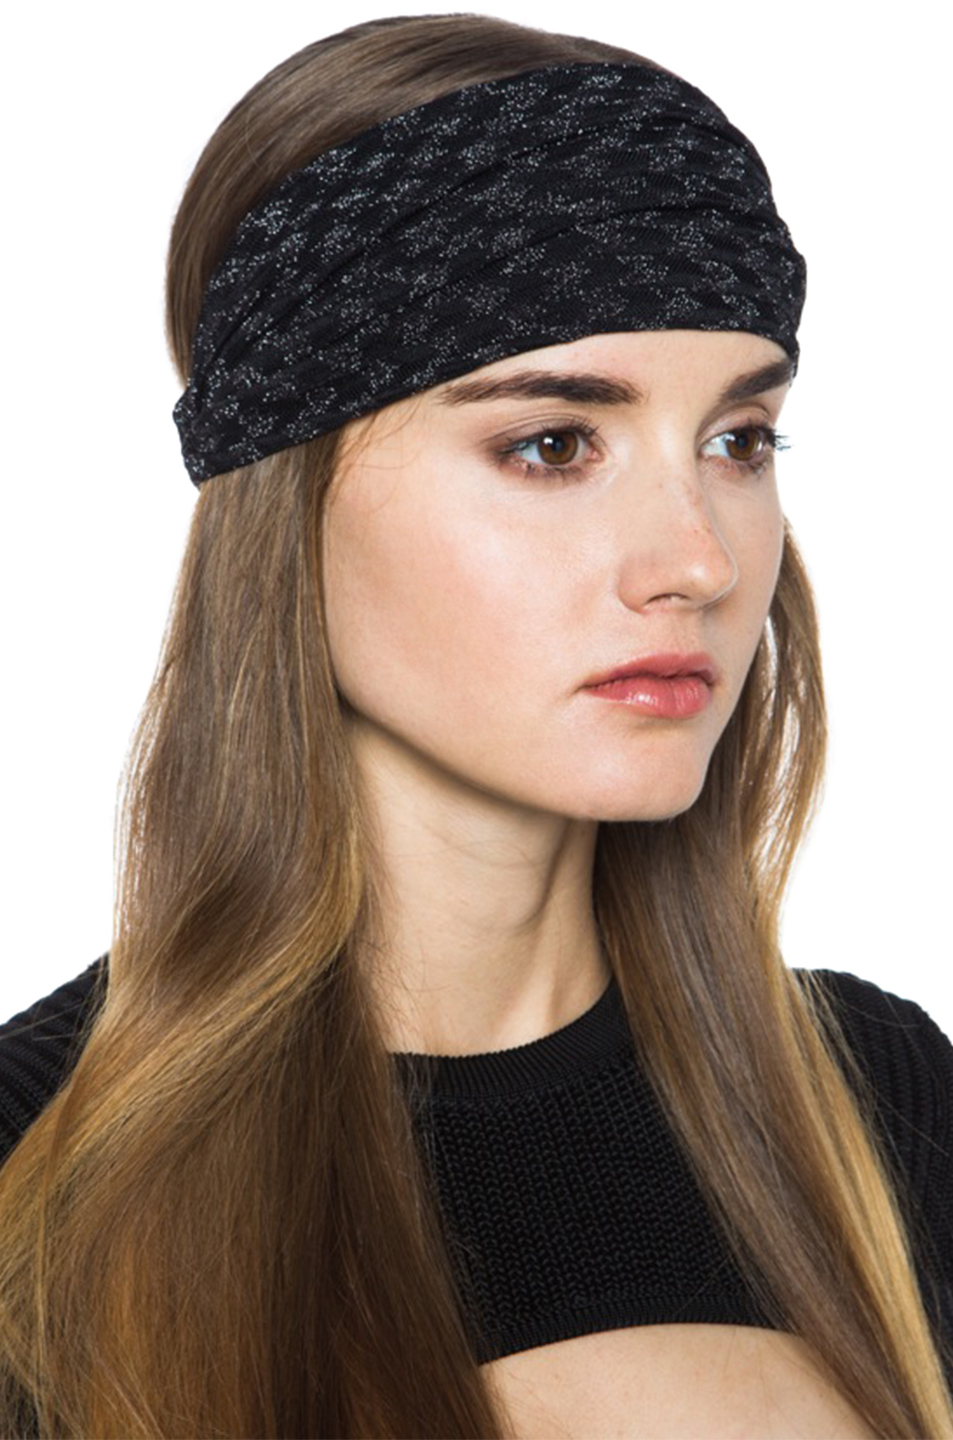 Accessory For Hair: Splendid And Superlative Headband Hairstyles